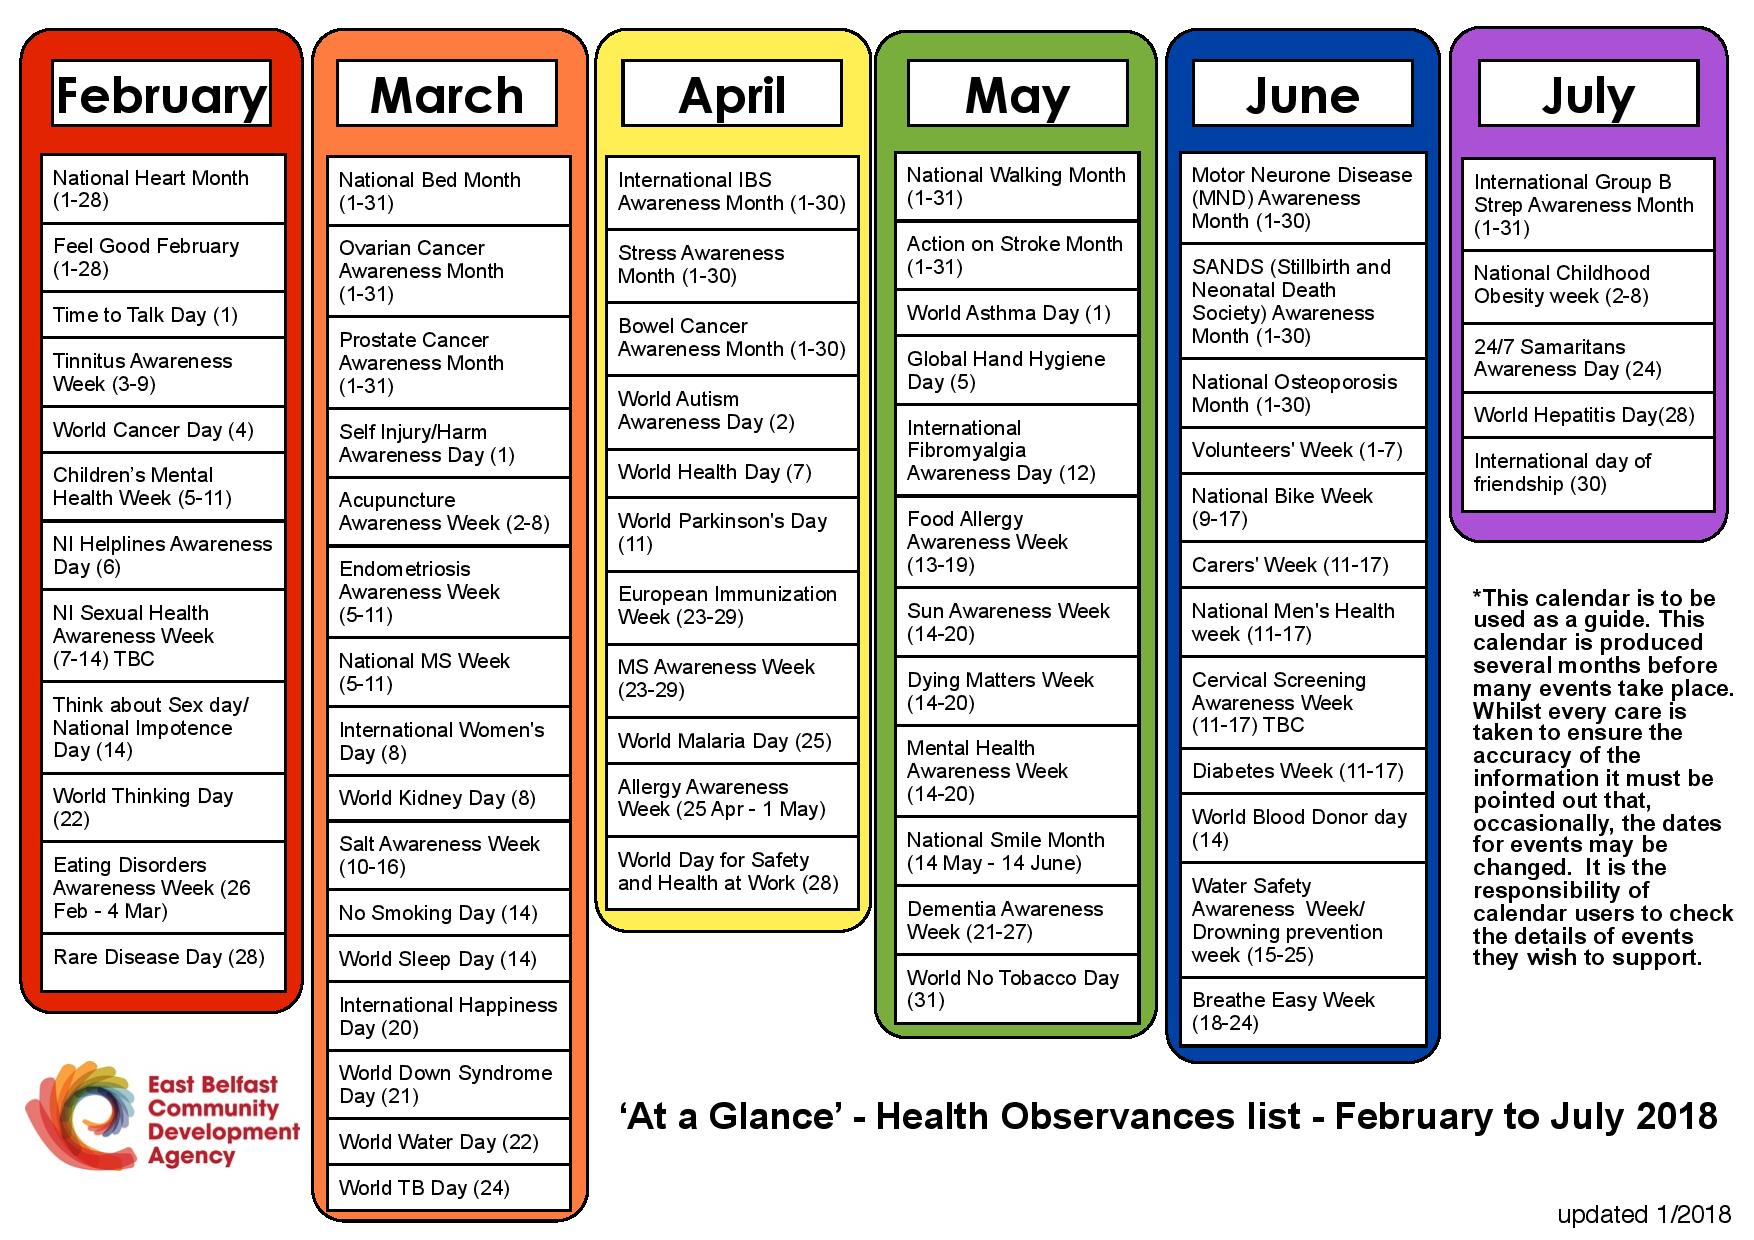 latest list of health observances february to july 2018 east